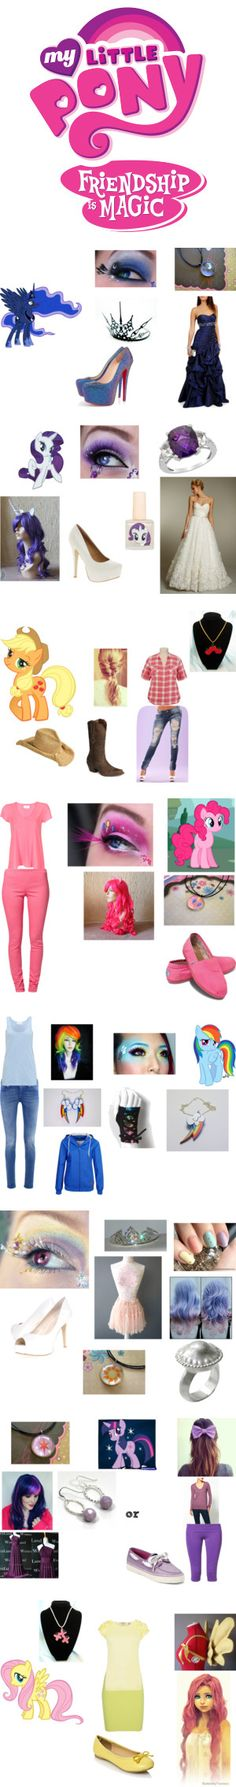 """my little pony friendship is magic"" by clarestuber ❤ liked on Polyvore"